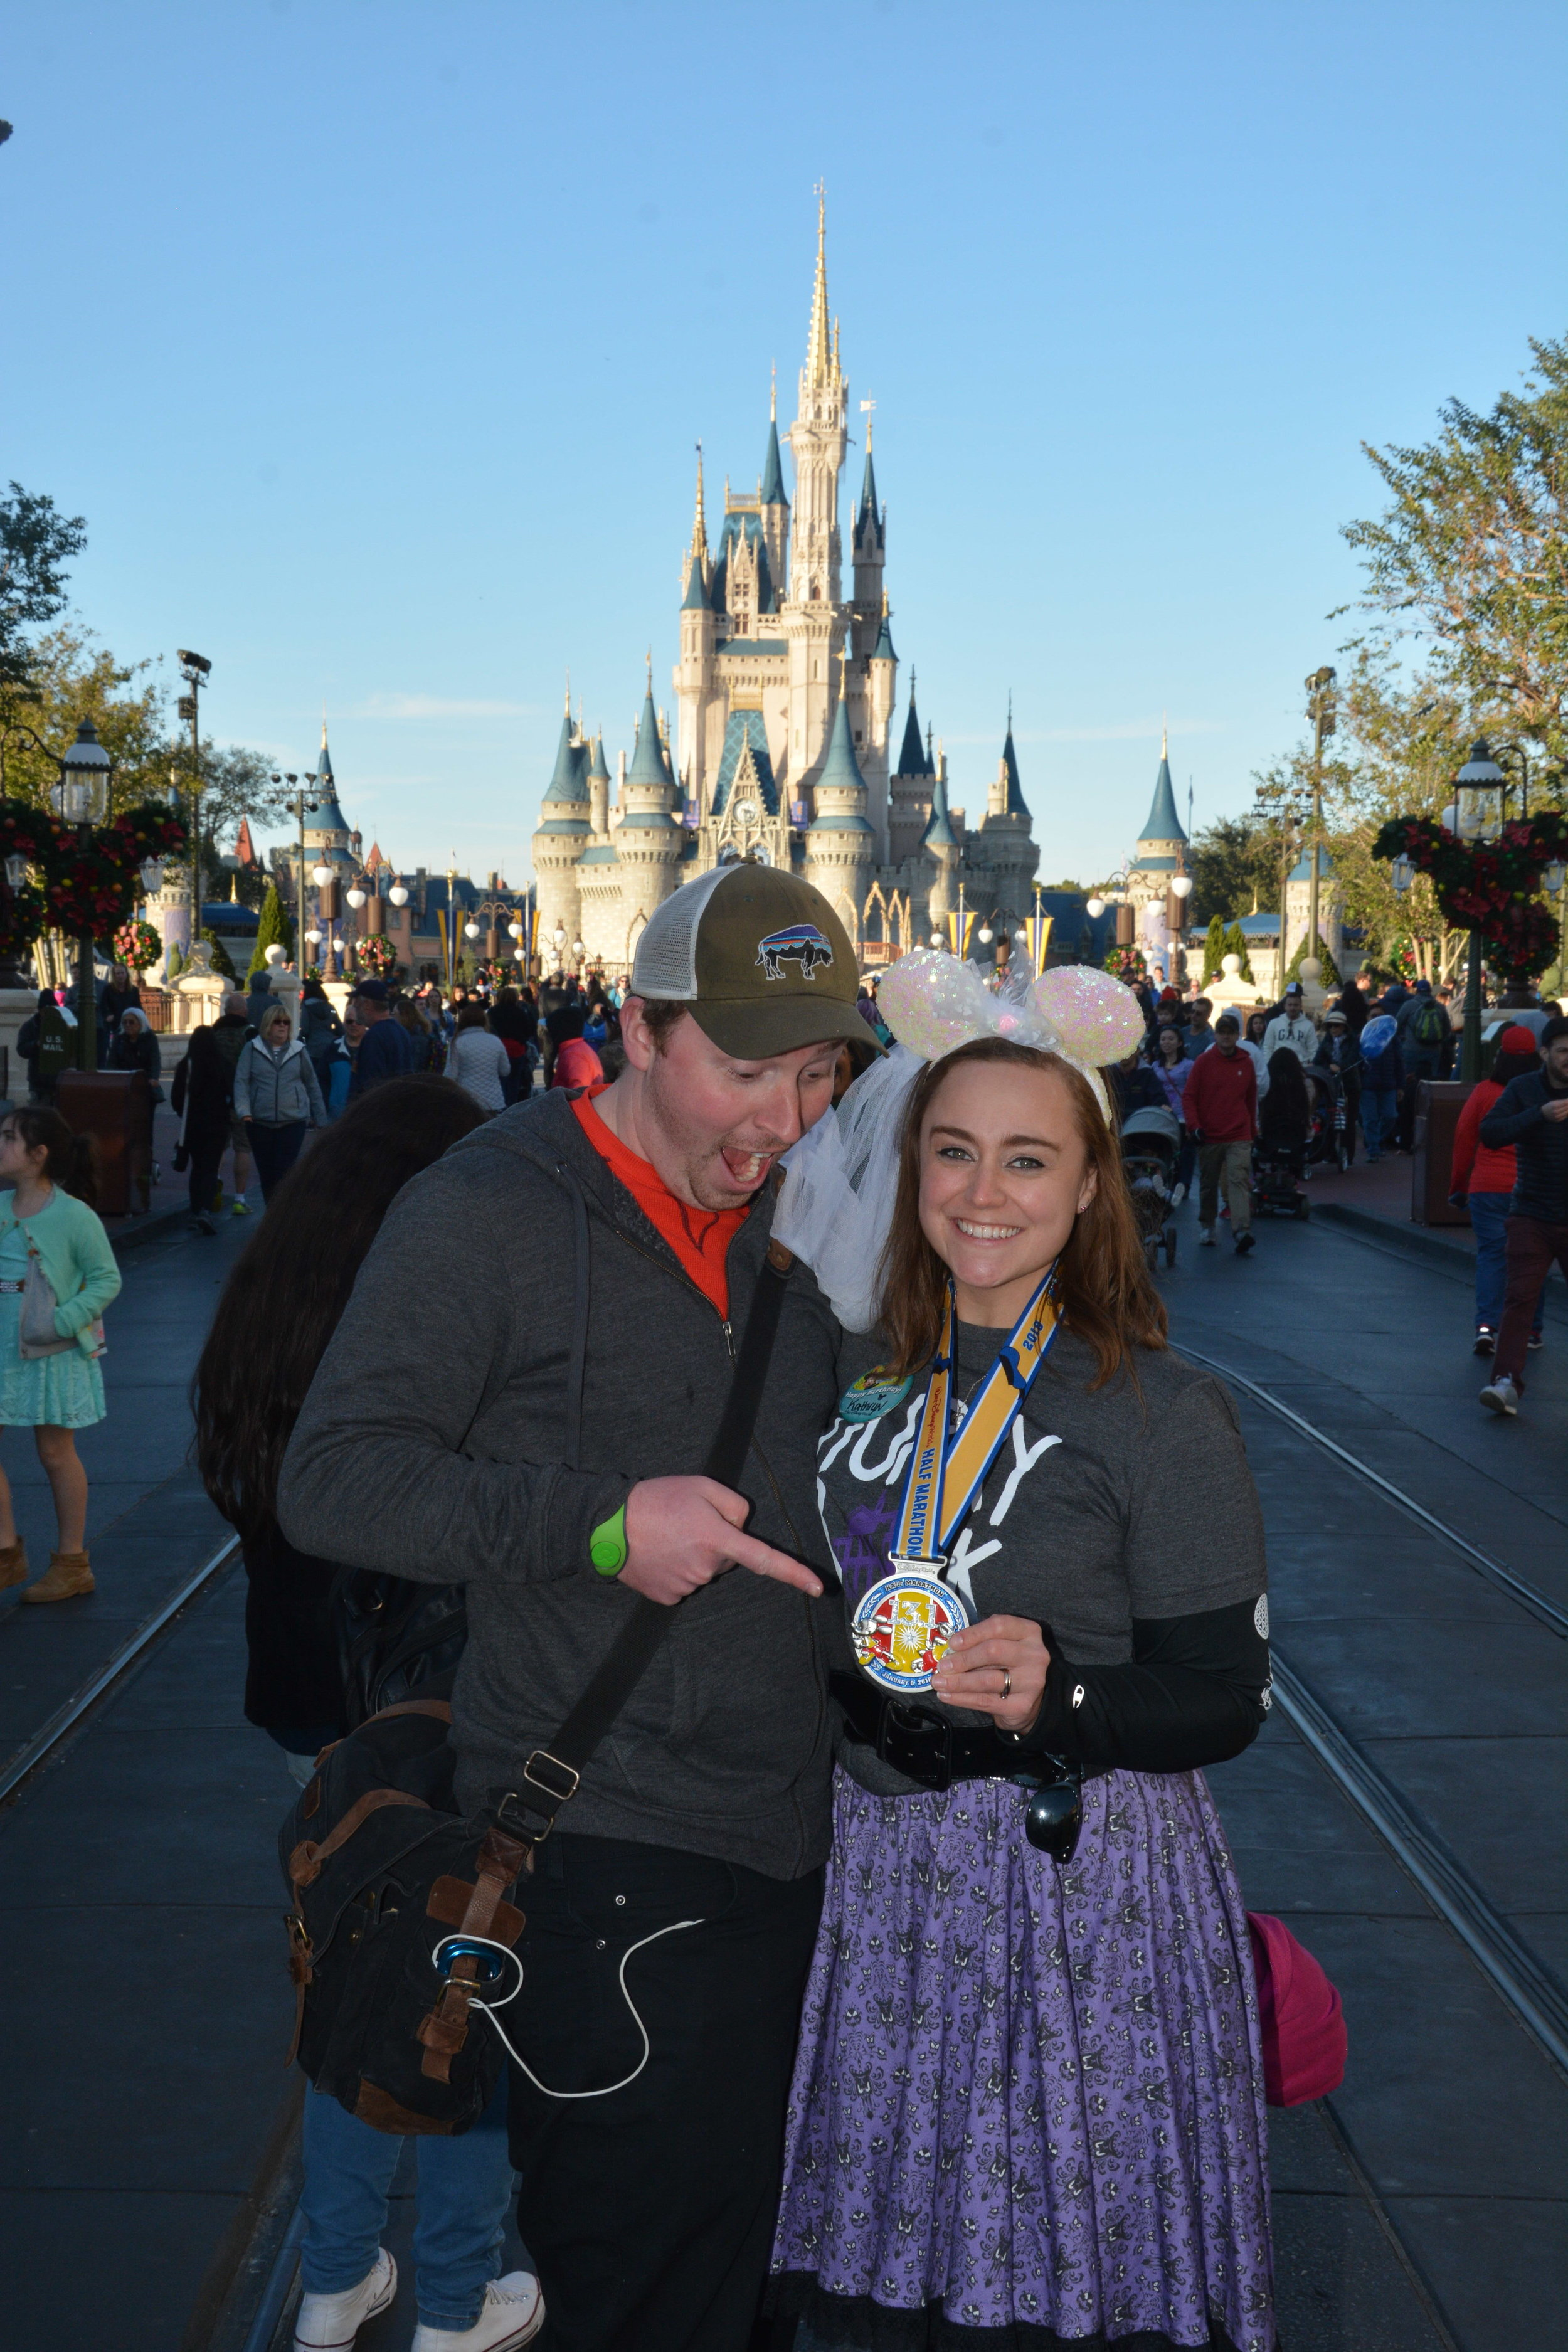 The greatest guy celebrating me finishing the race, even though I wear ridiculous homemade Haunted Mansion skirts